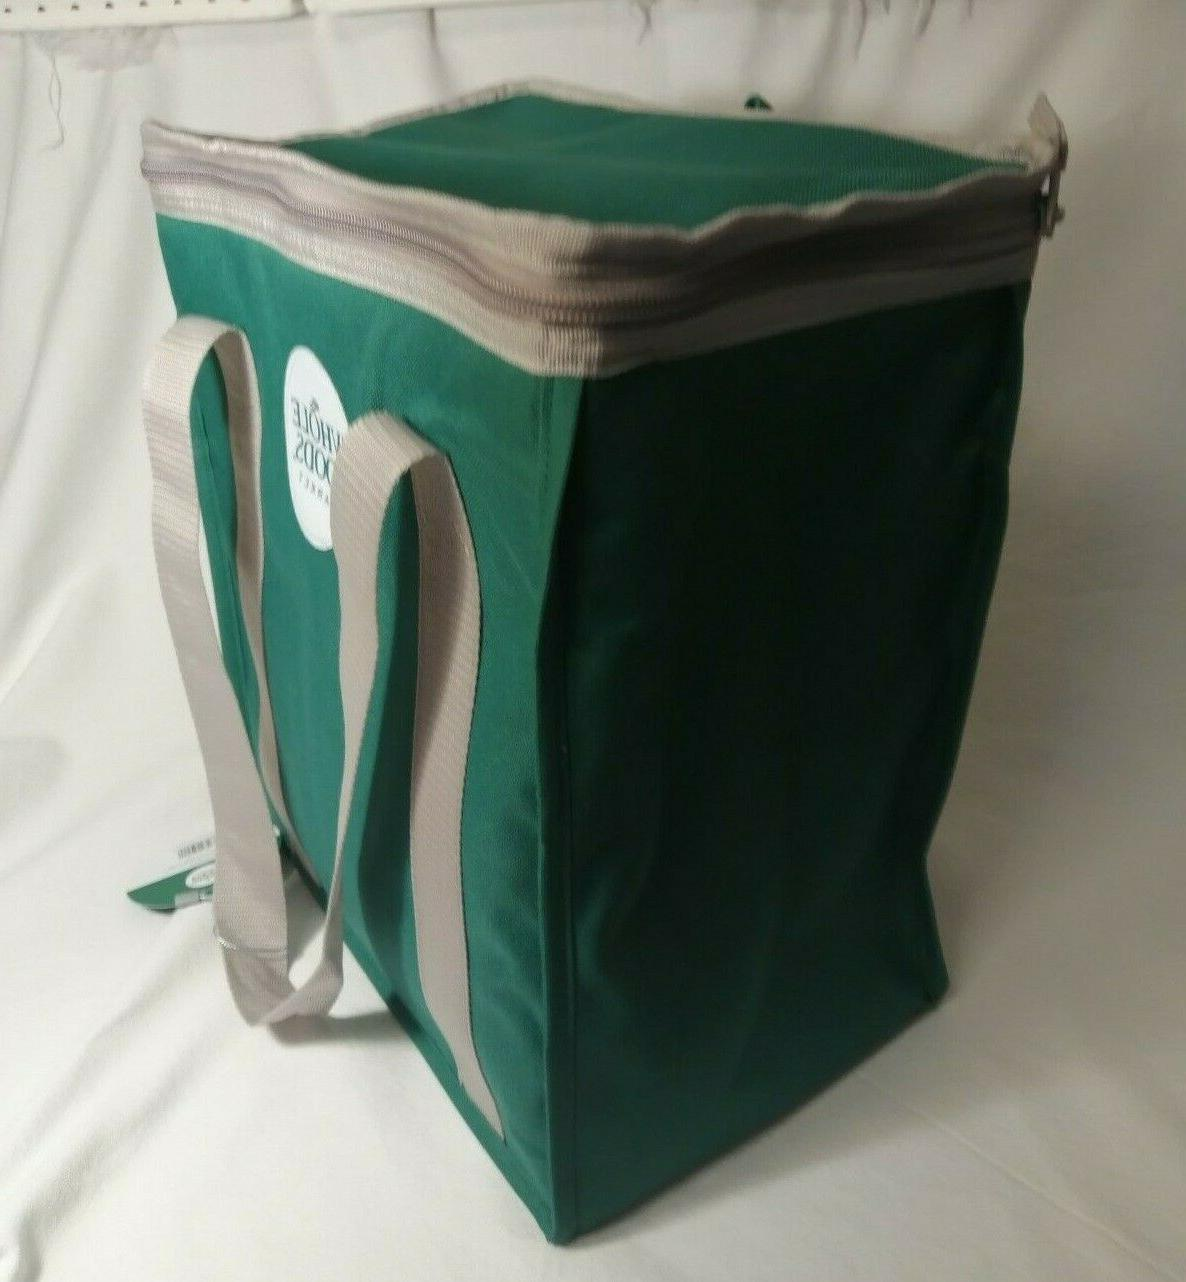 NWT WHOLE Reusable Insulated Cooler Green Shopping Bag